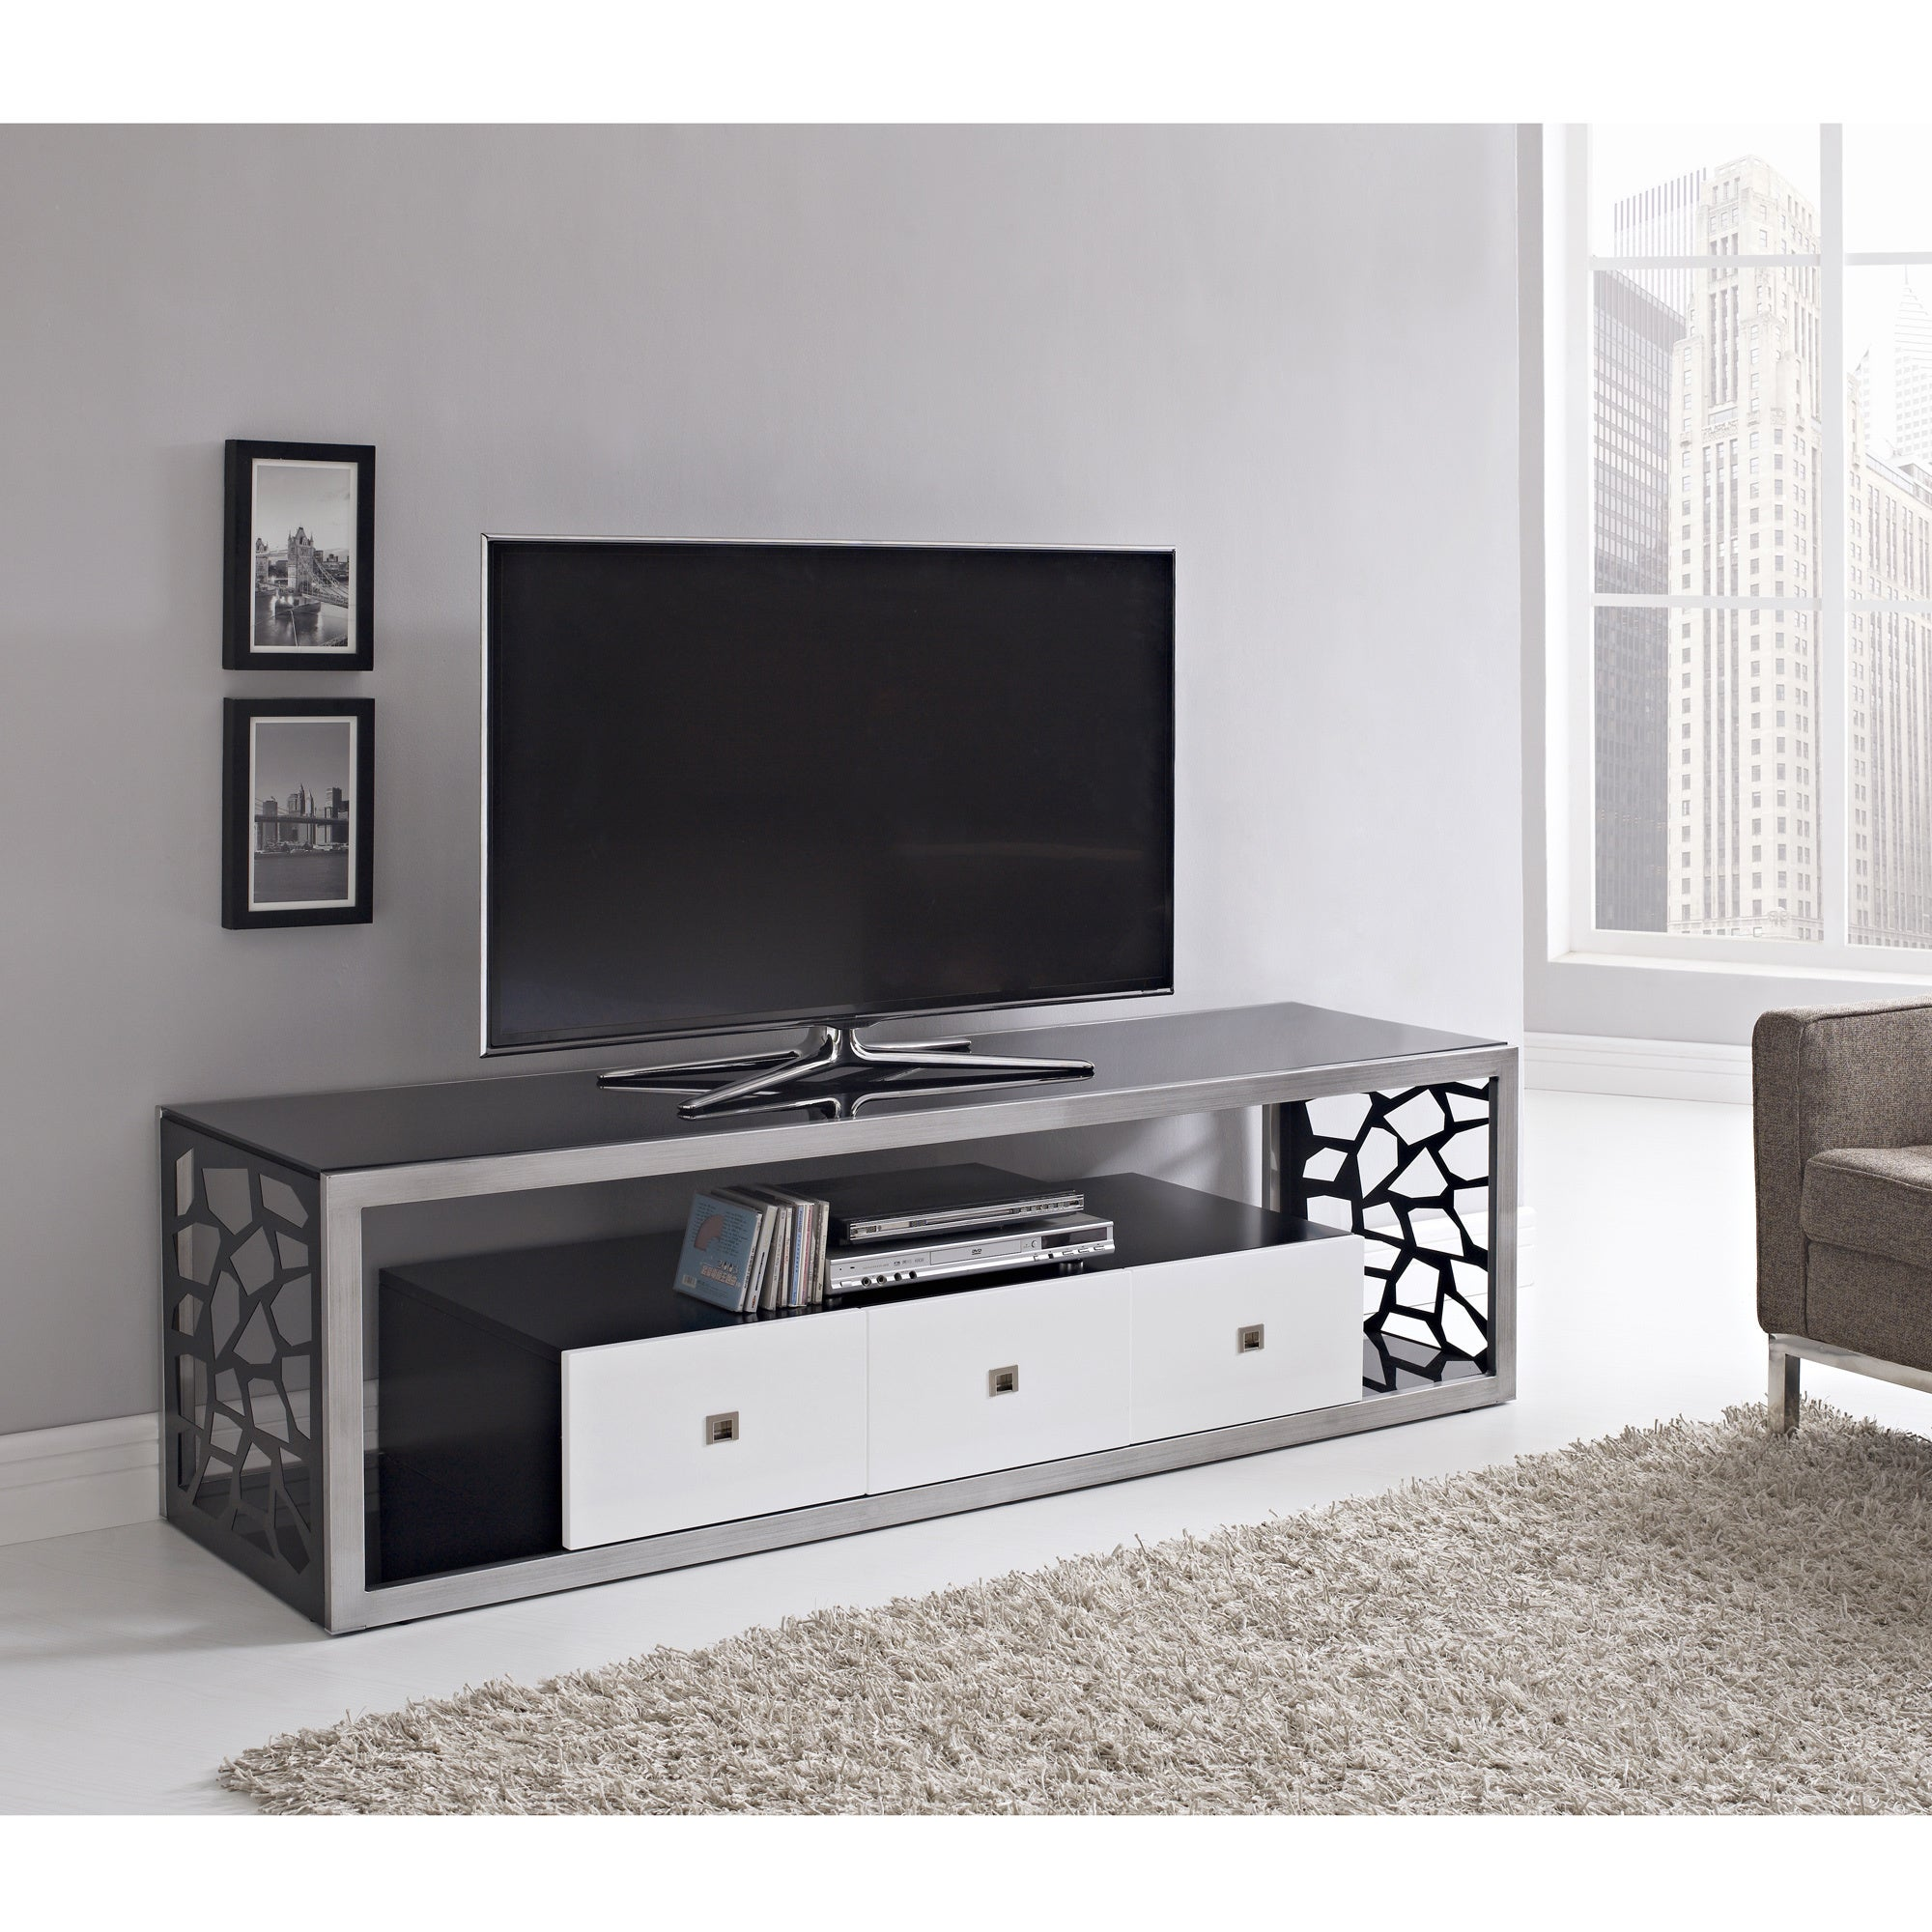 black glass modern 70 inch tv stand overstock shopping great deals on entertainment centers. Black Bedroom Furniture Sets. Home Design Ideas